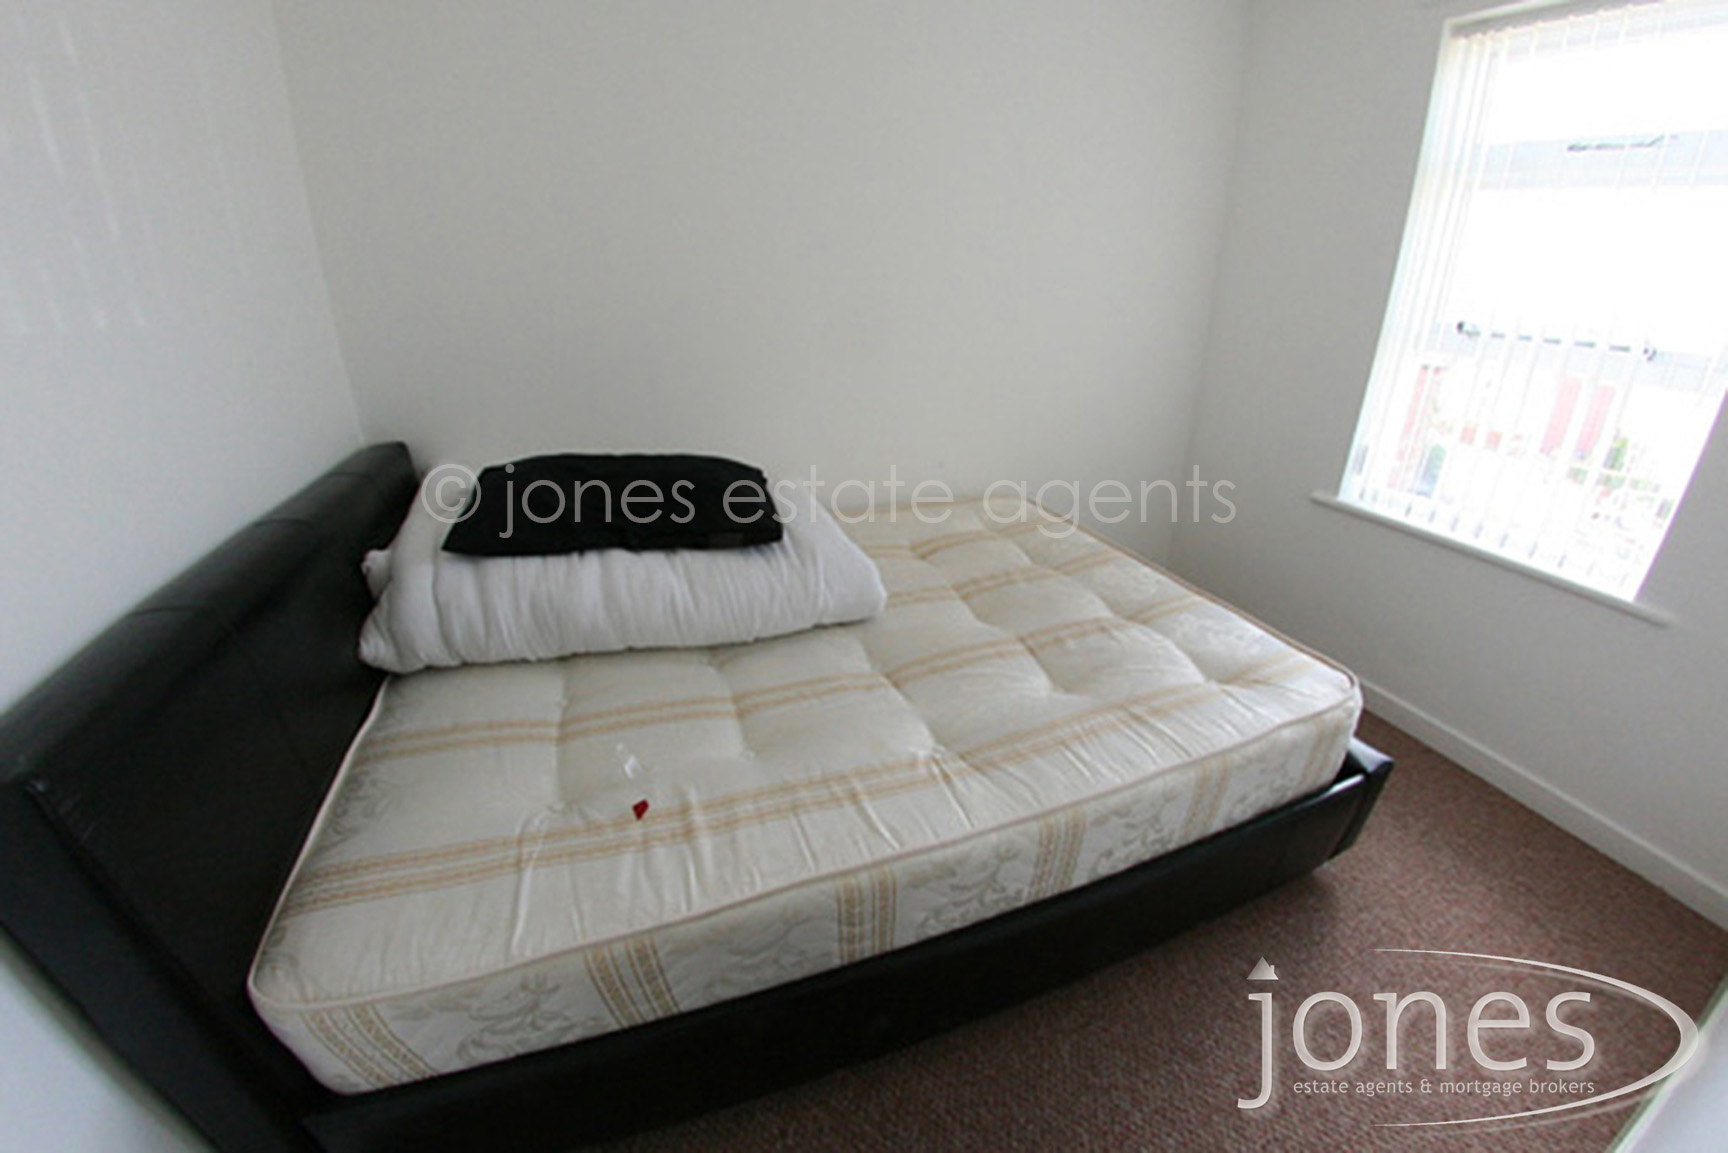 Home for Sale Let - Photo 04 GALLEYSFIELDS COURT, The Headland ,Hartlepool, TS24 0NB